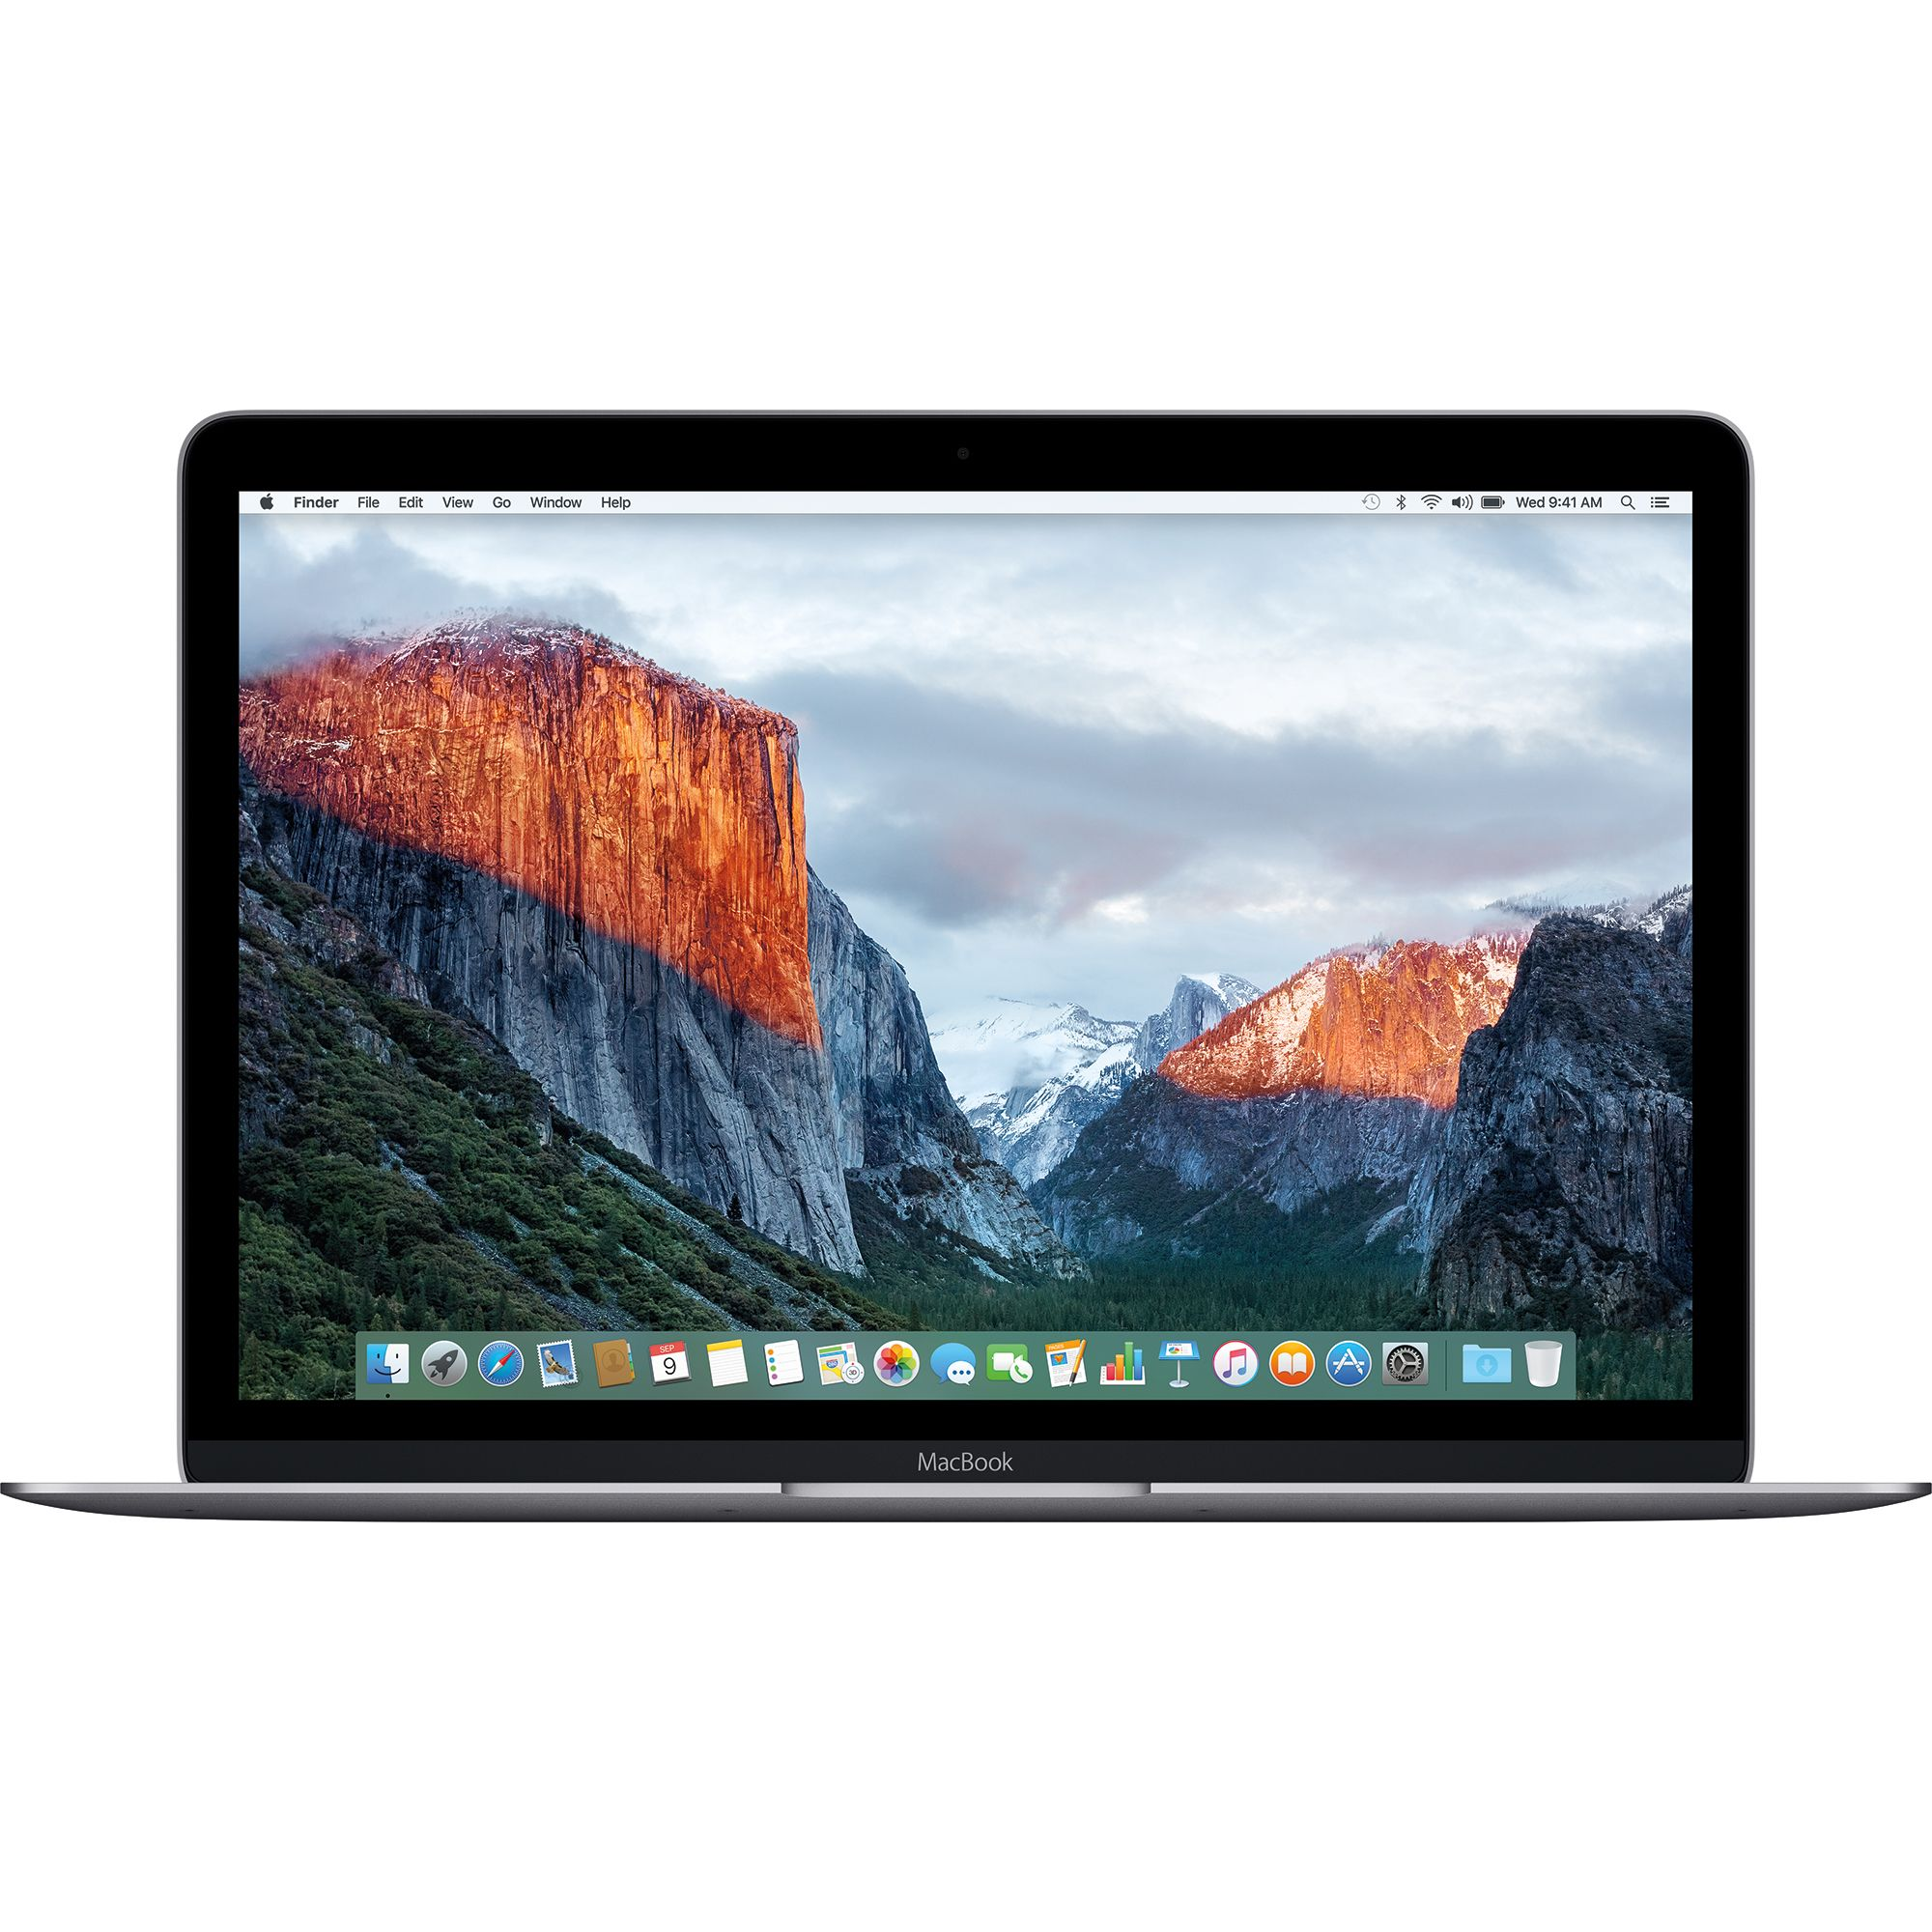 Notebook Apple MacBook Retina 12 Intel Core m3 1.2GHz RAM 8GB SSD 256GB Tastatura RO Space Grey